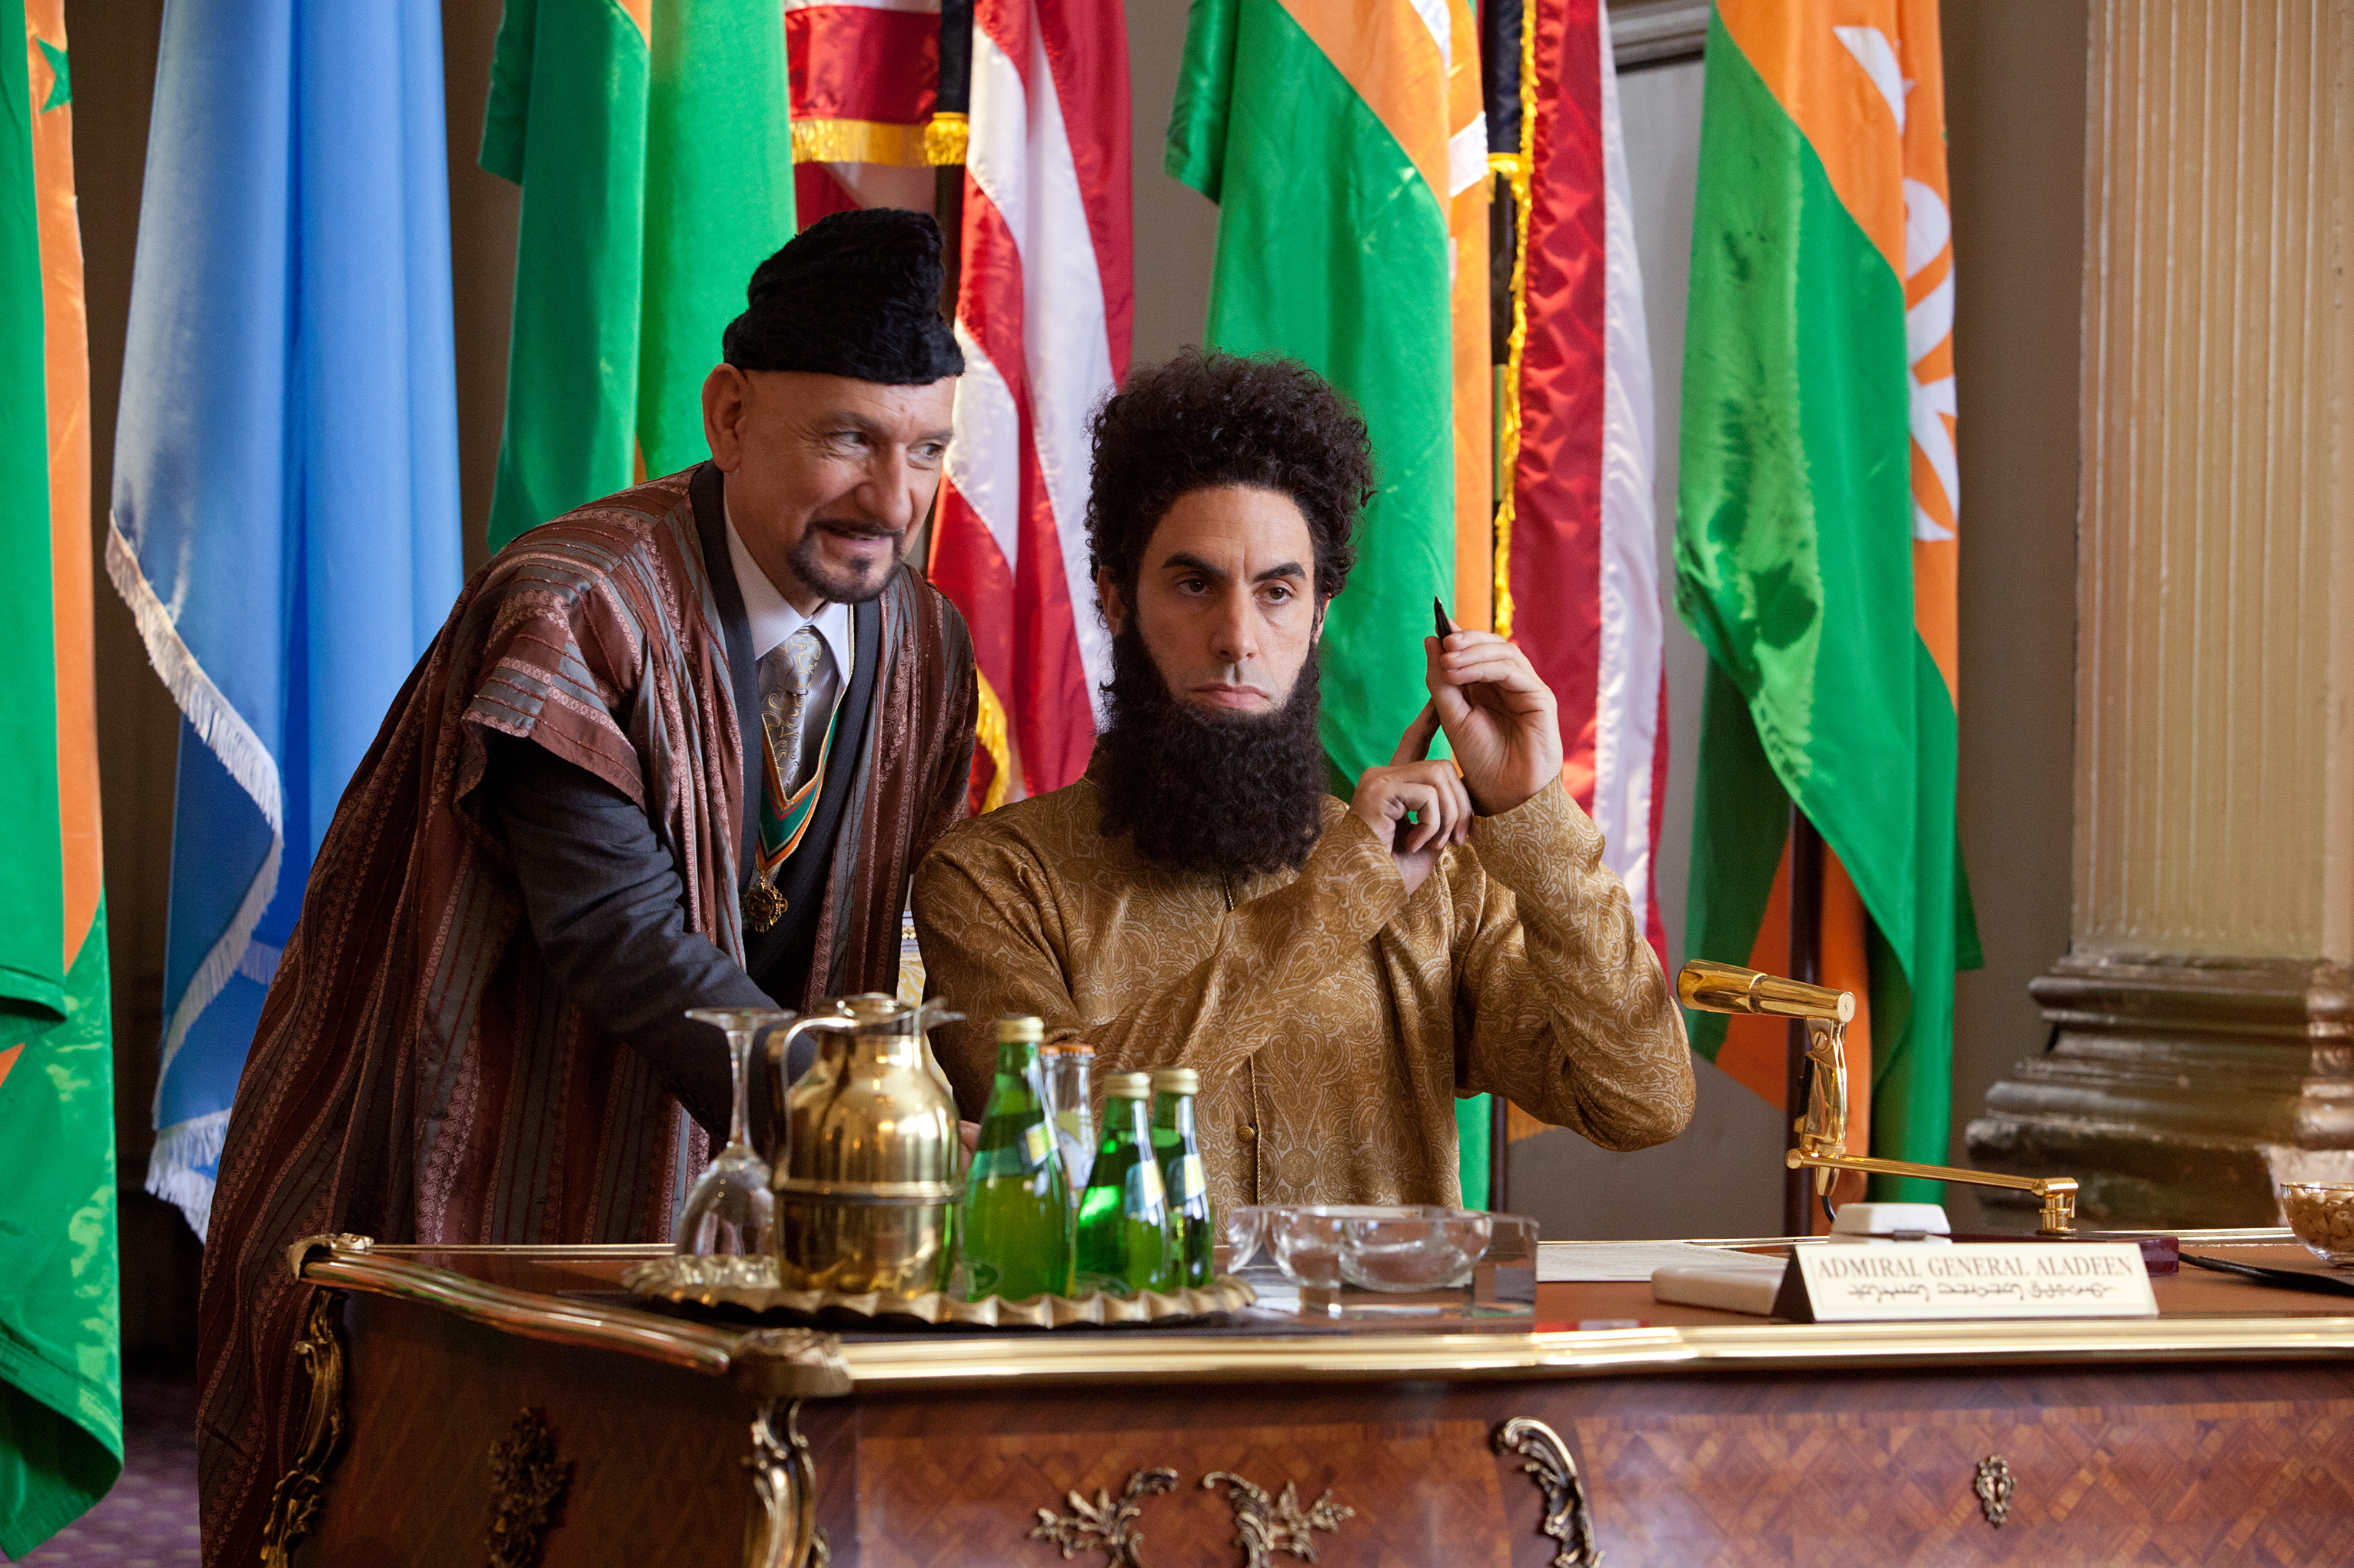 Dictator' pushes edgy absurdity past the envelope   The Spokesman-Review